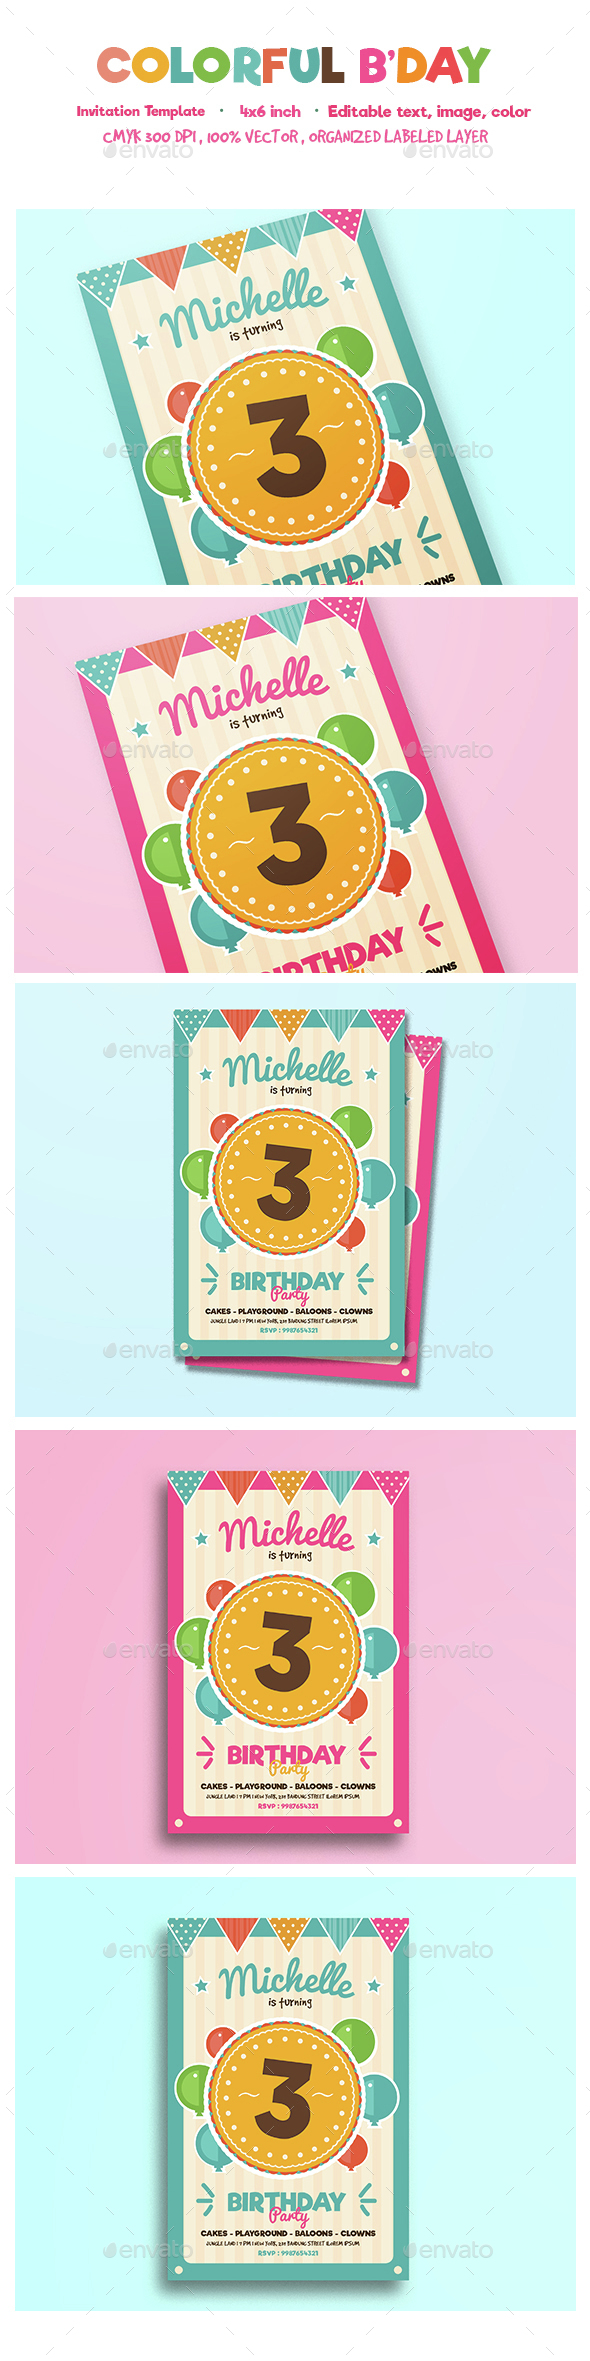 Colorful birthday invitation - Birthday Greeting Cards